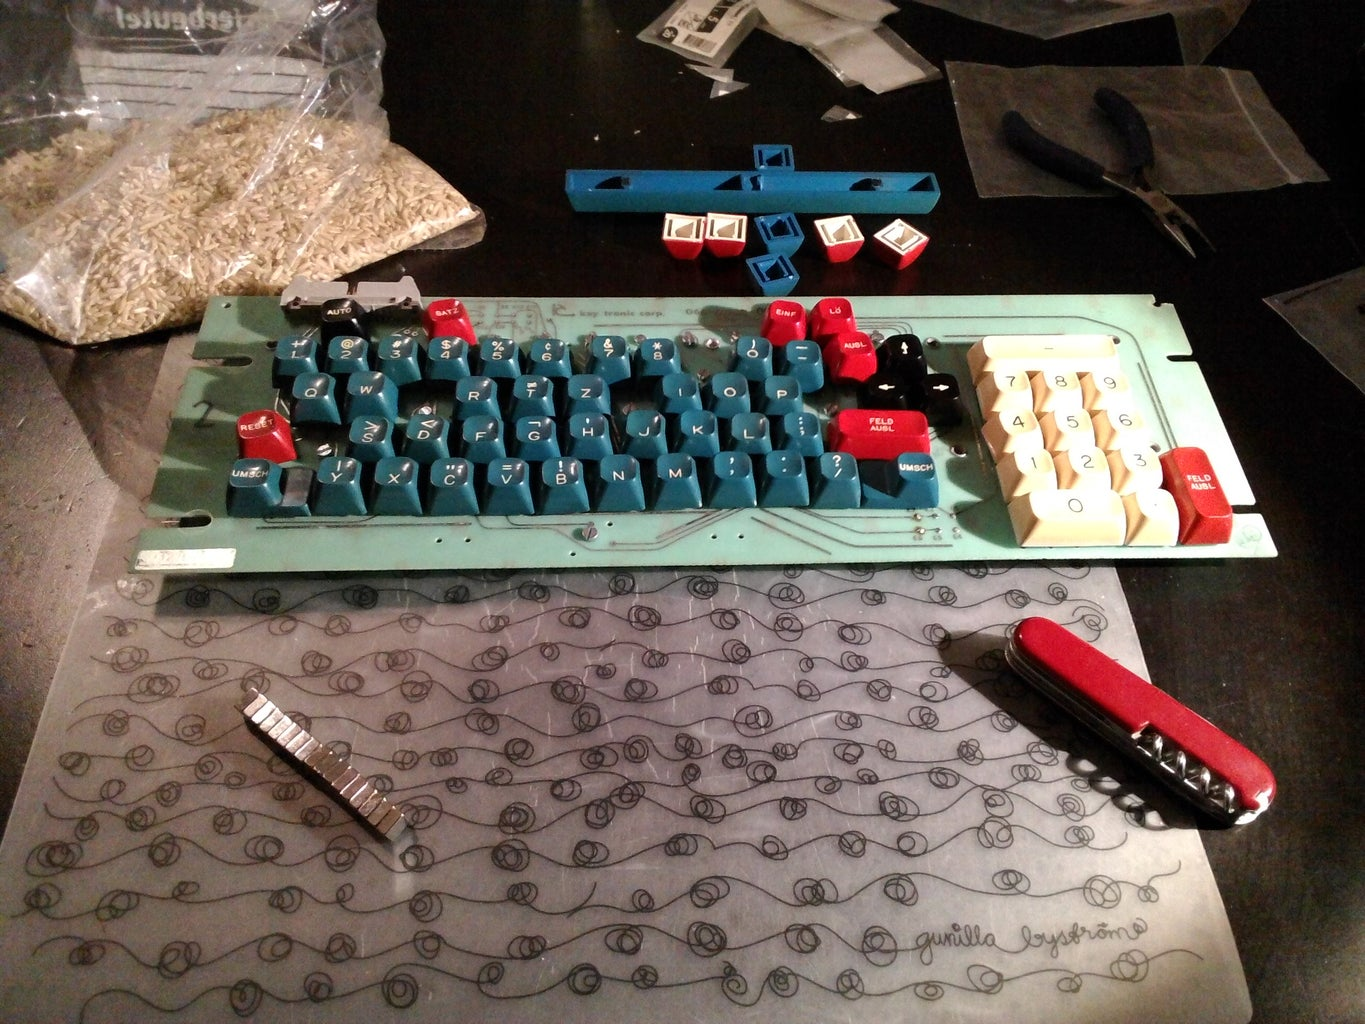 Inserting the Magnets Into the Keys